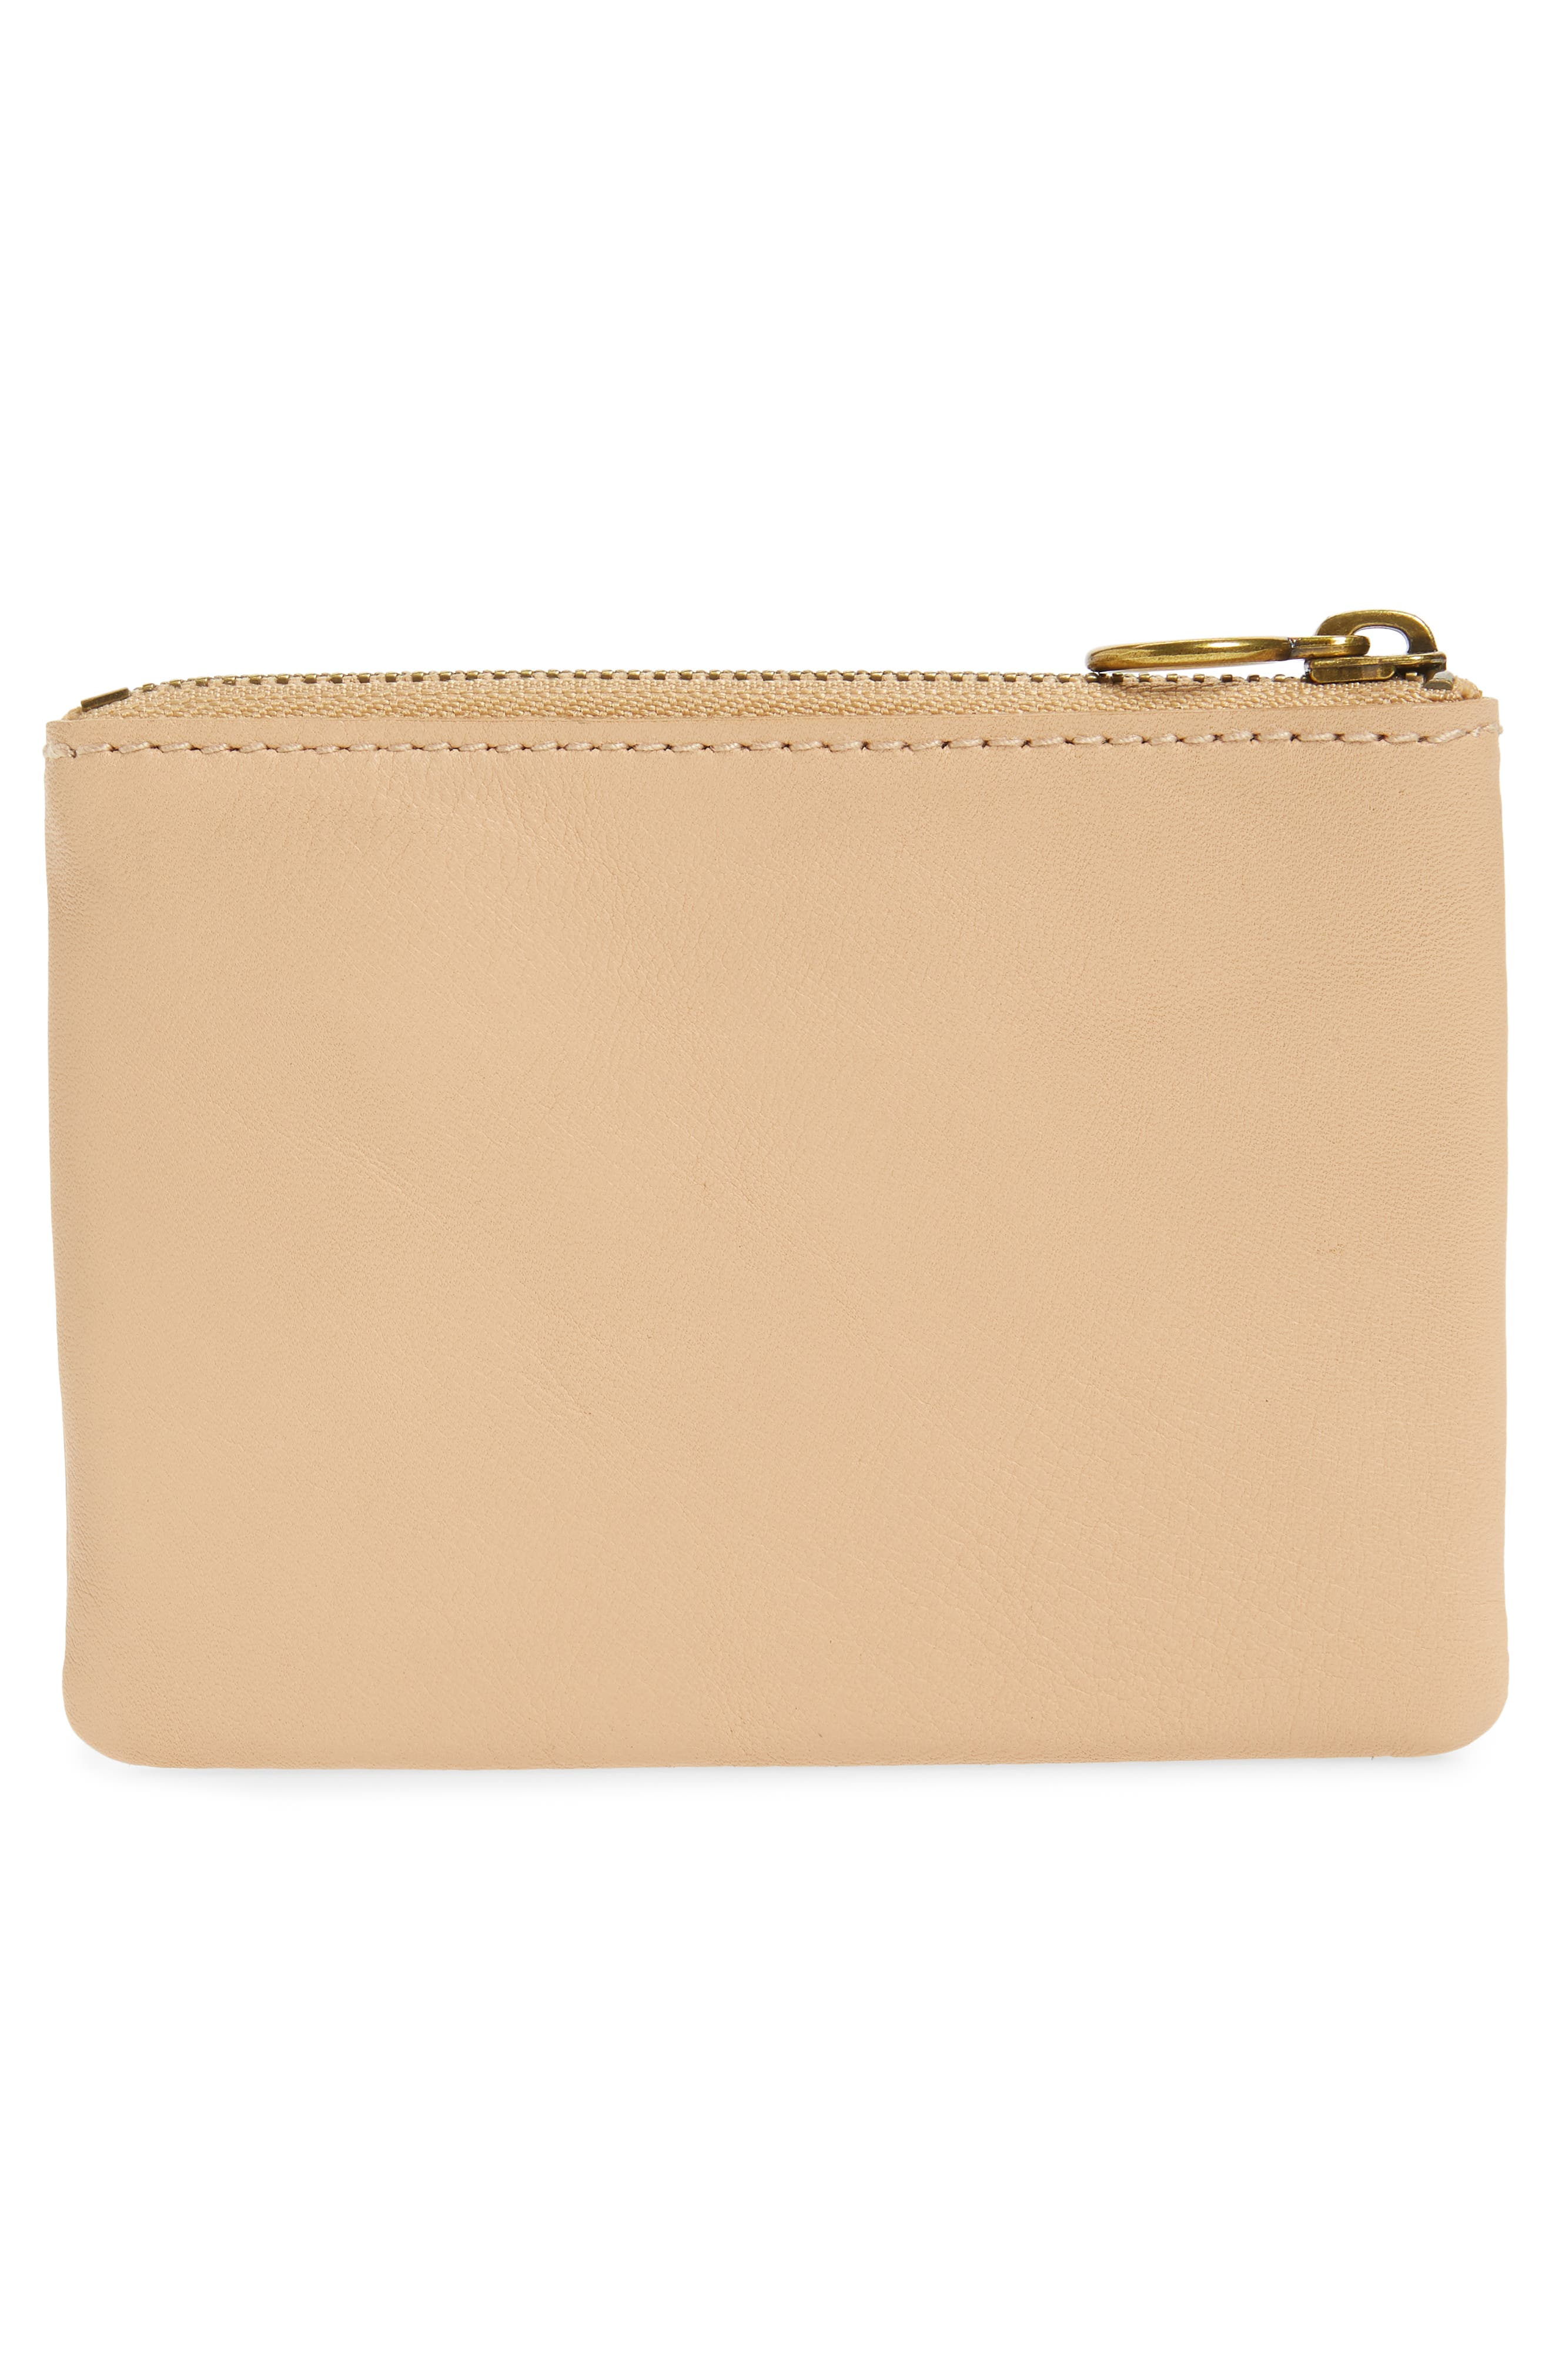 The Leather Pouch Wallet,                             Alternate thumbnail 4, color,                             900